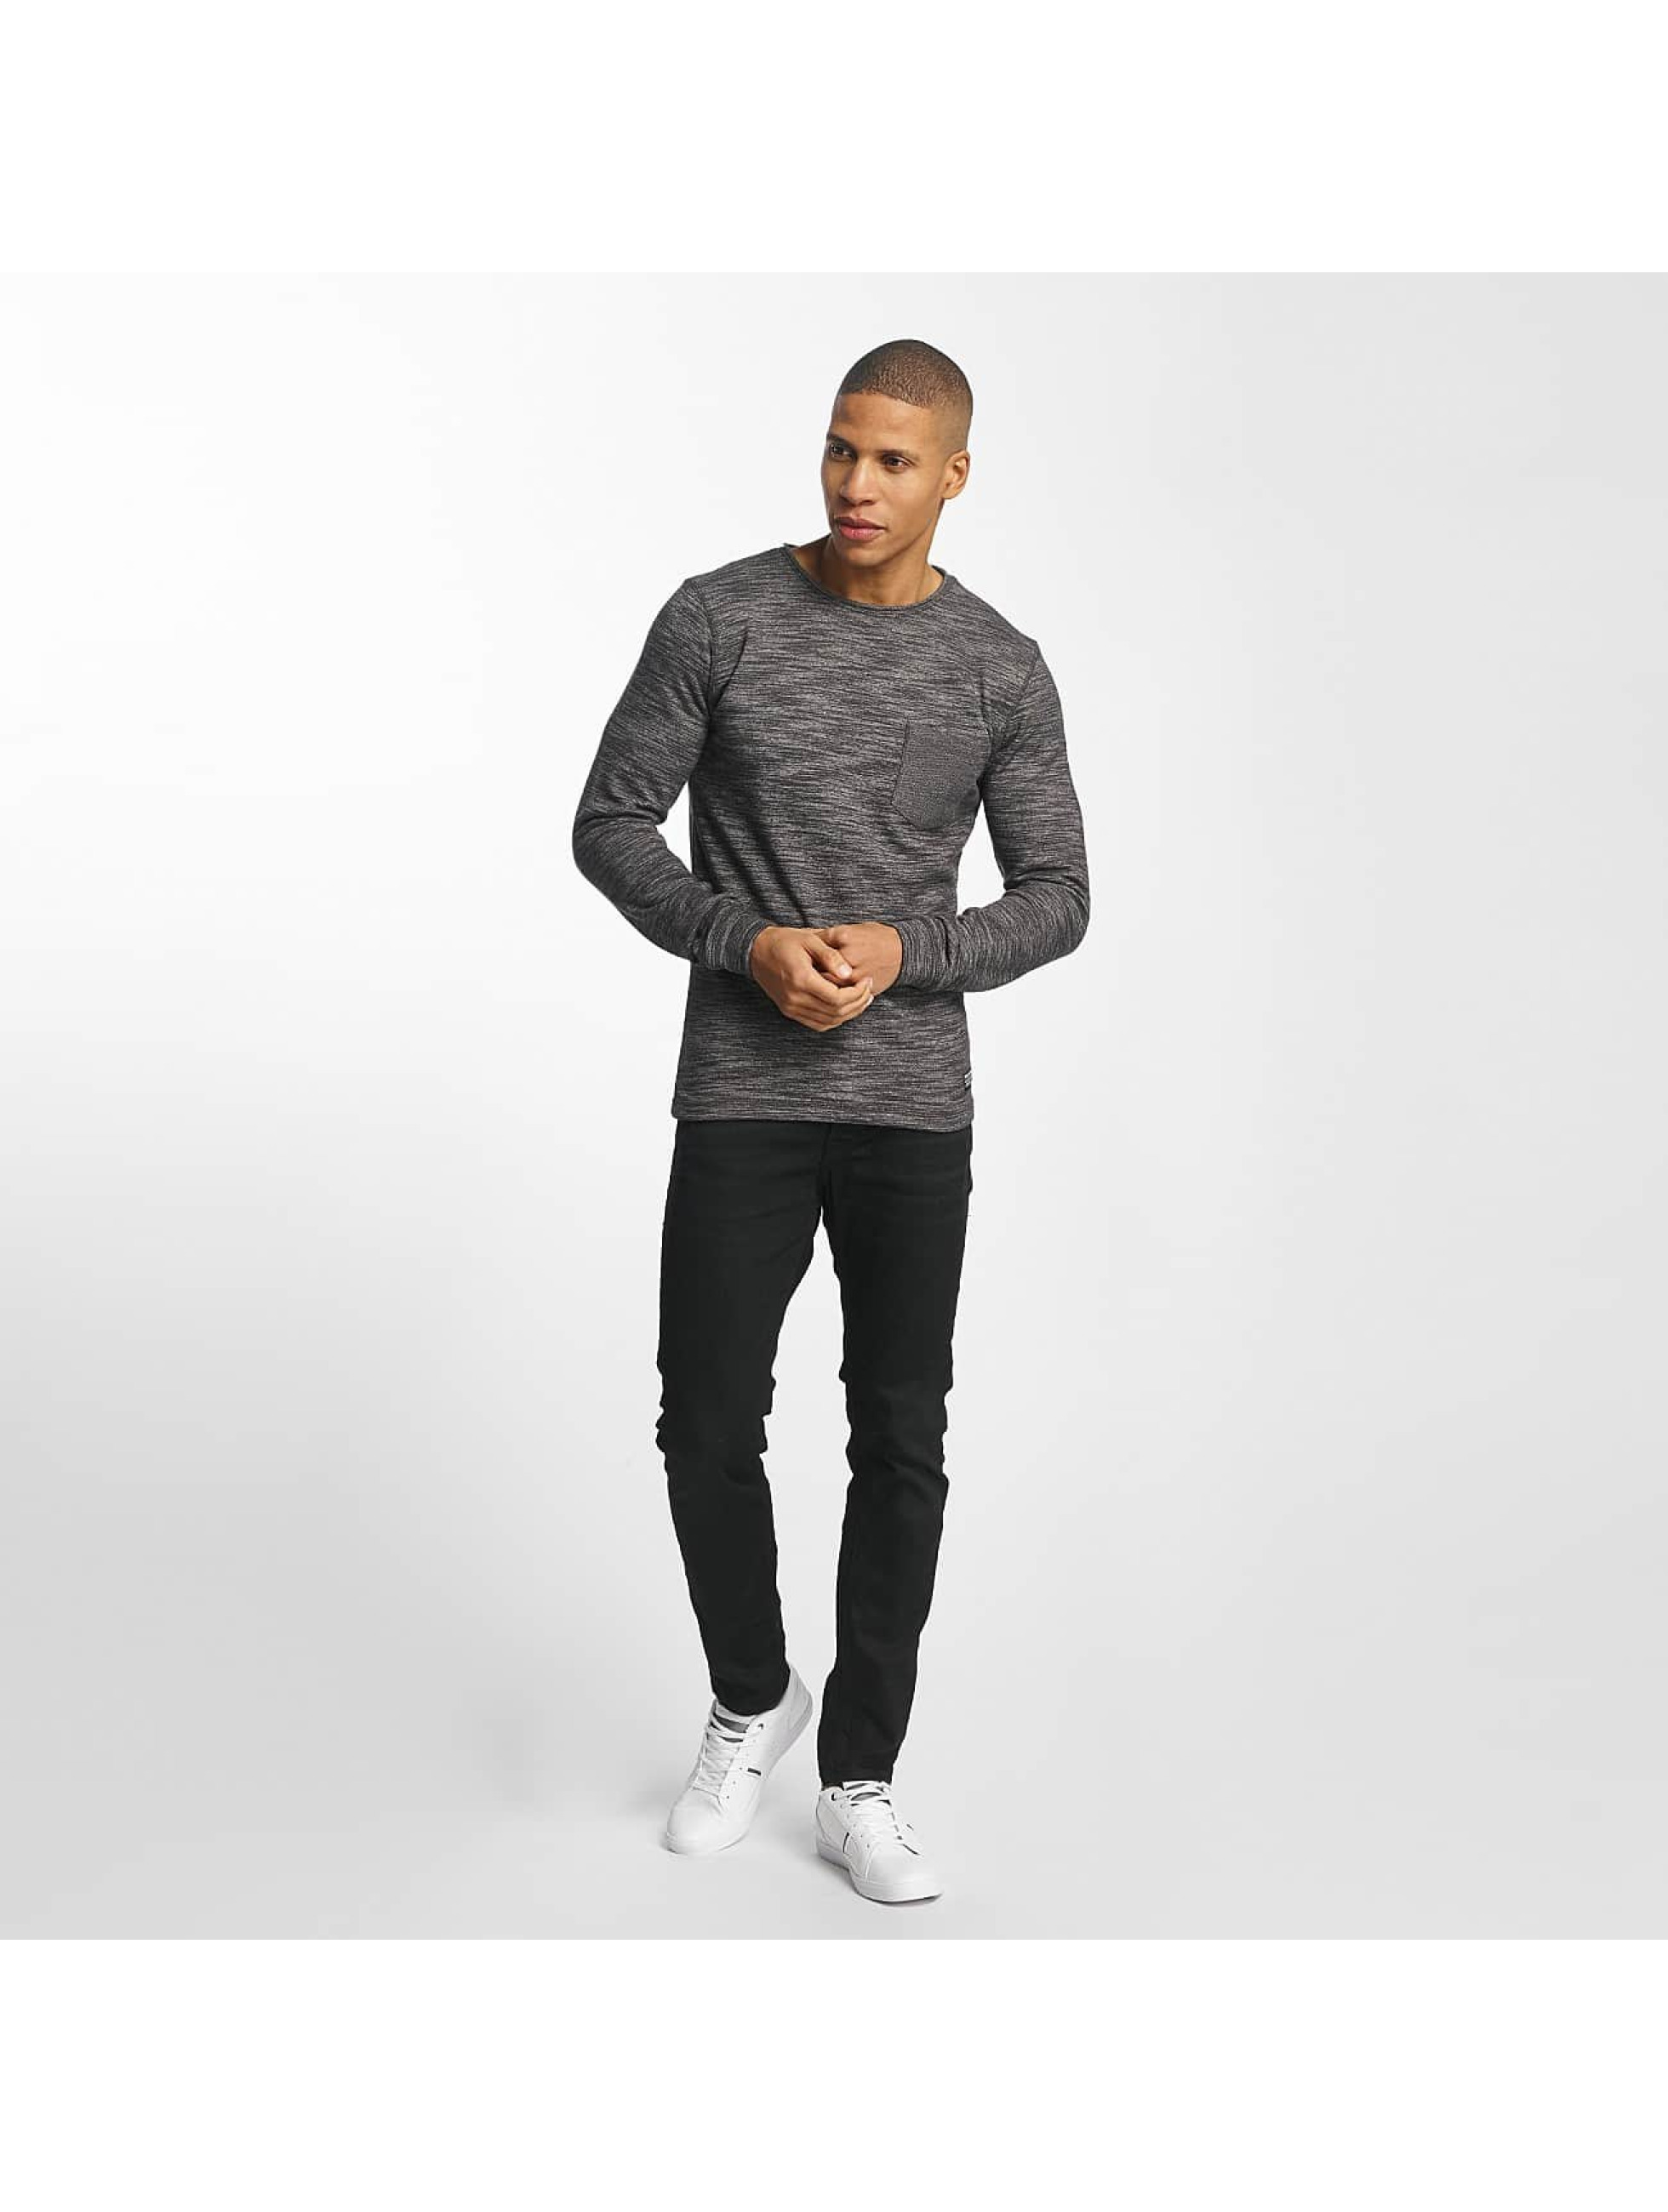 SHINE Original Pullover Malcom Pocket Inside Out gray